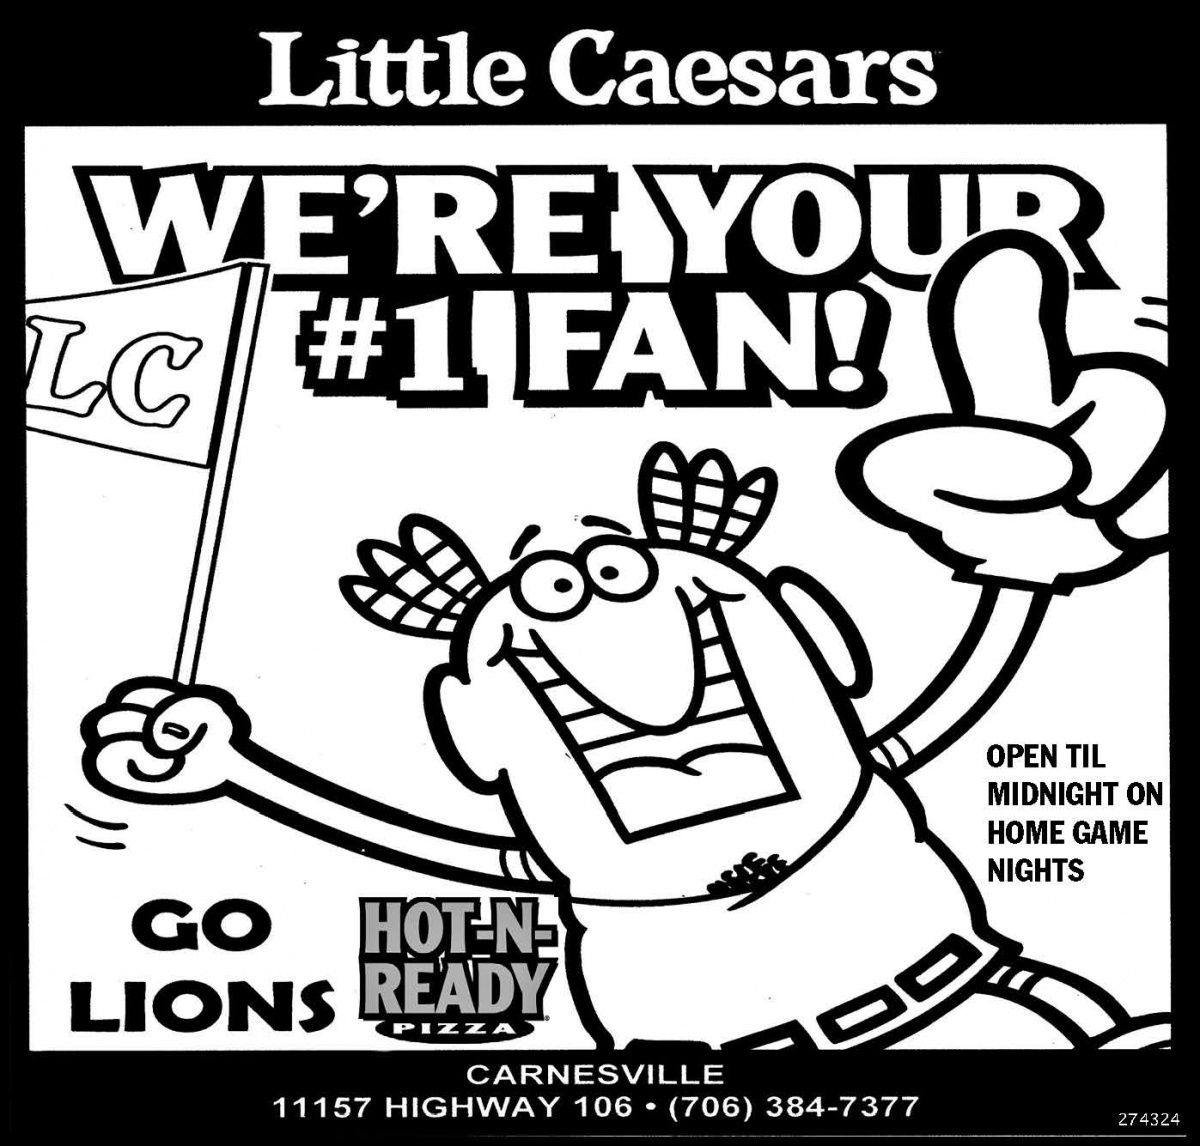 OPEN TIL MIDNIGHT ON HOME GAME NIGHTS    GO LIONS    HOT-N-  READY PIZZA | Little Caesars - Carnesville , GA #georgia #LavoniaGA #shoplocal #localGA